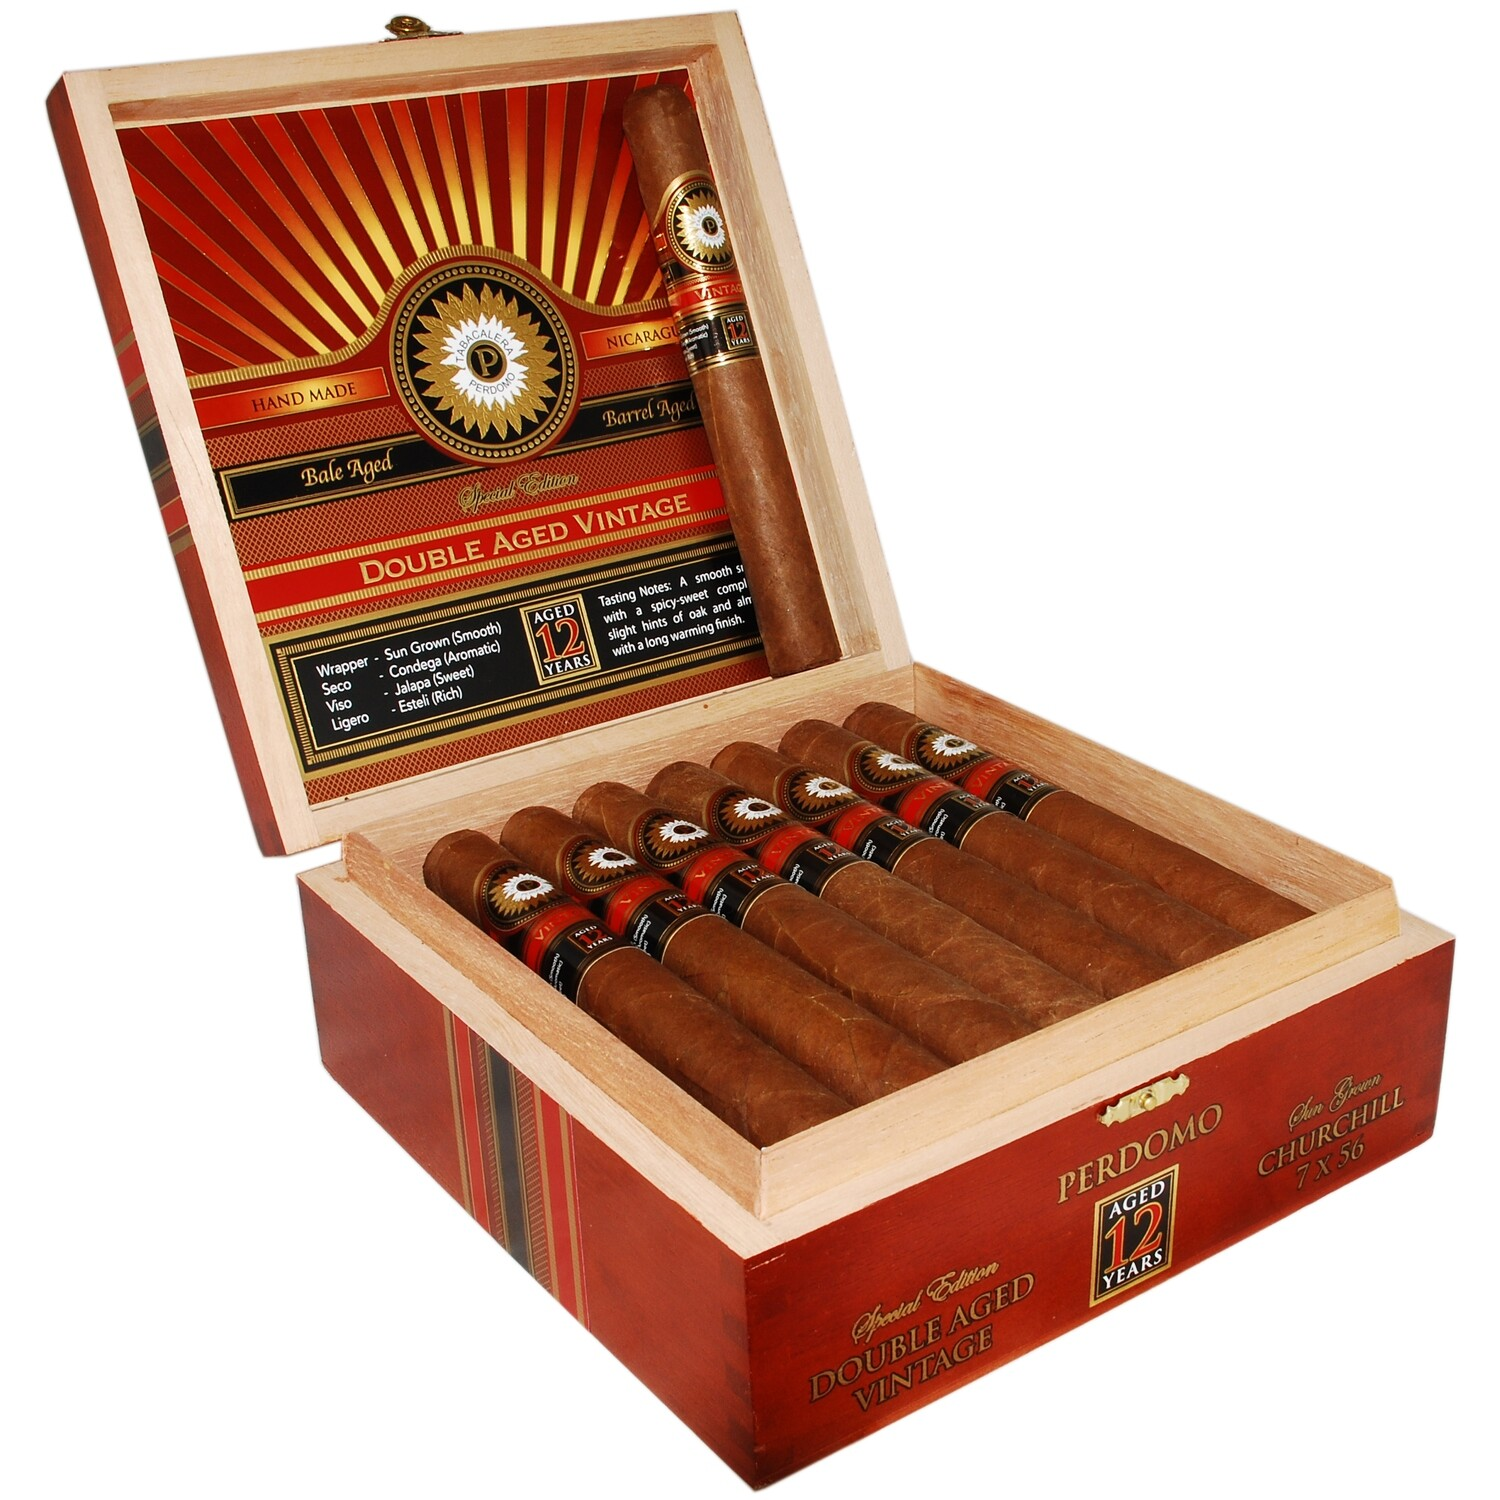 Perdomo Double Age Gordo Sun Grown